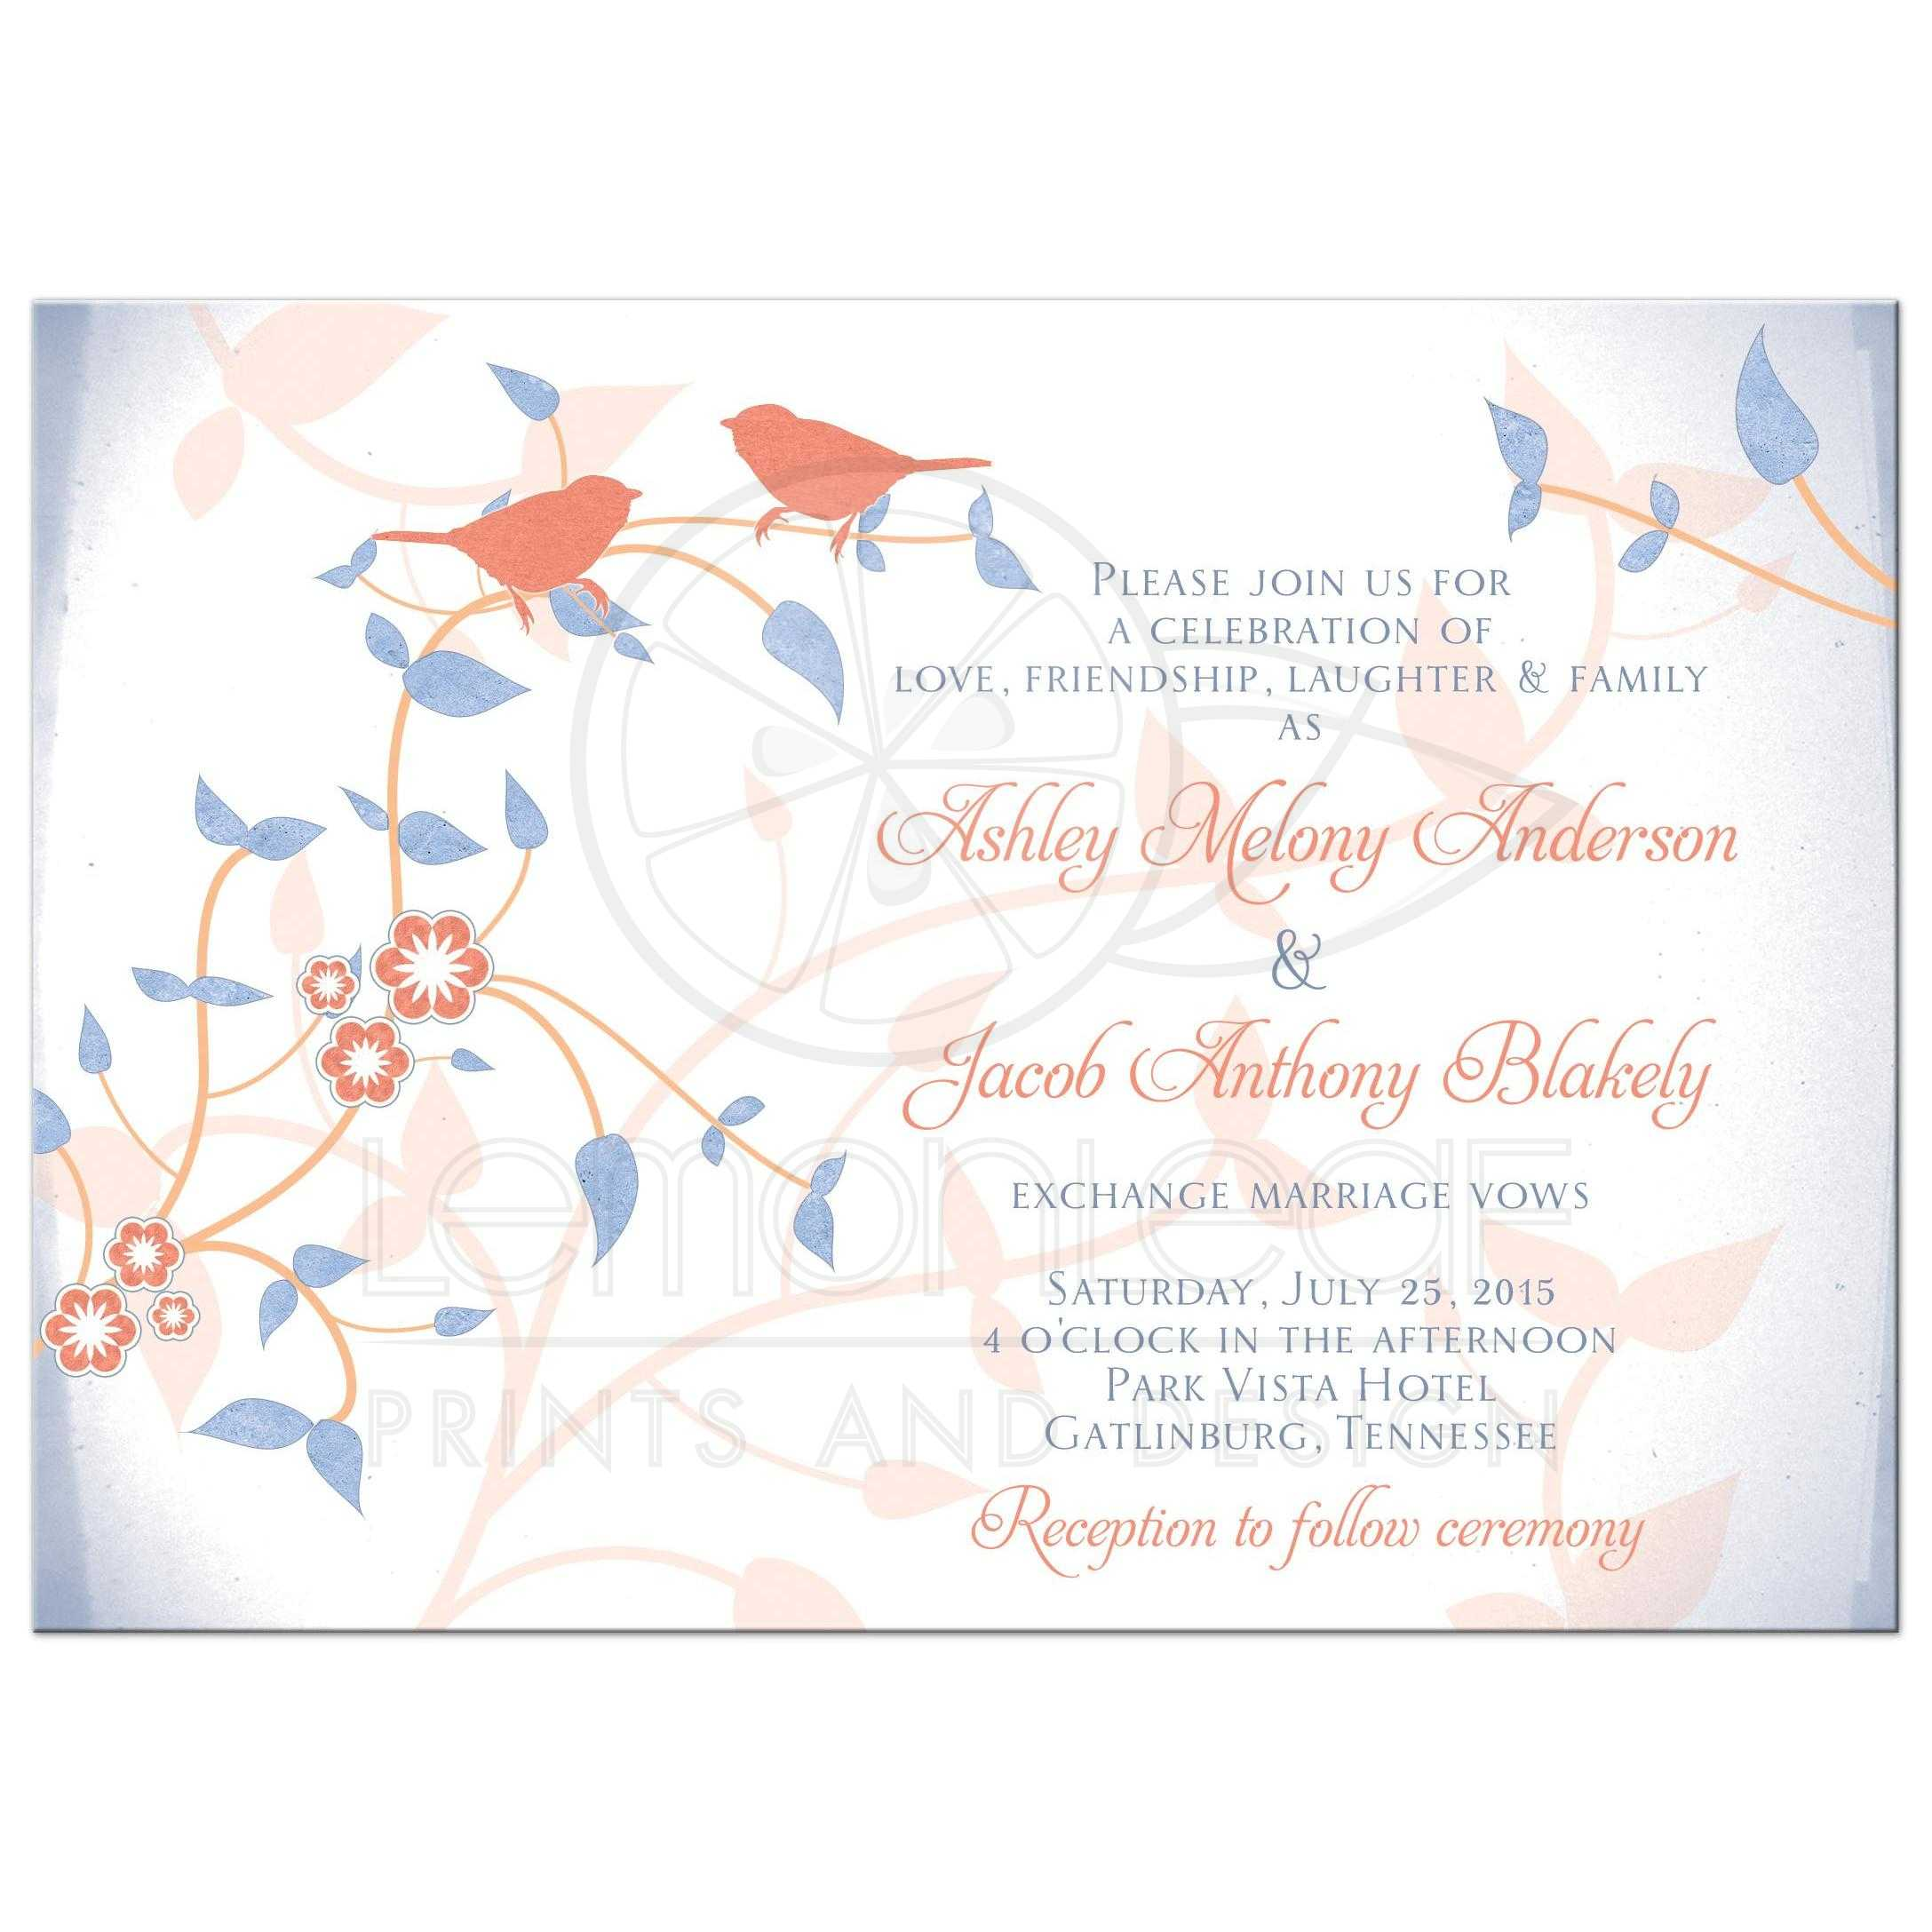 Wedding Invitation C Peach Blue Songbirds Flower Leaves Front